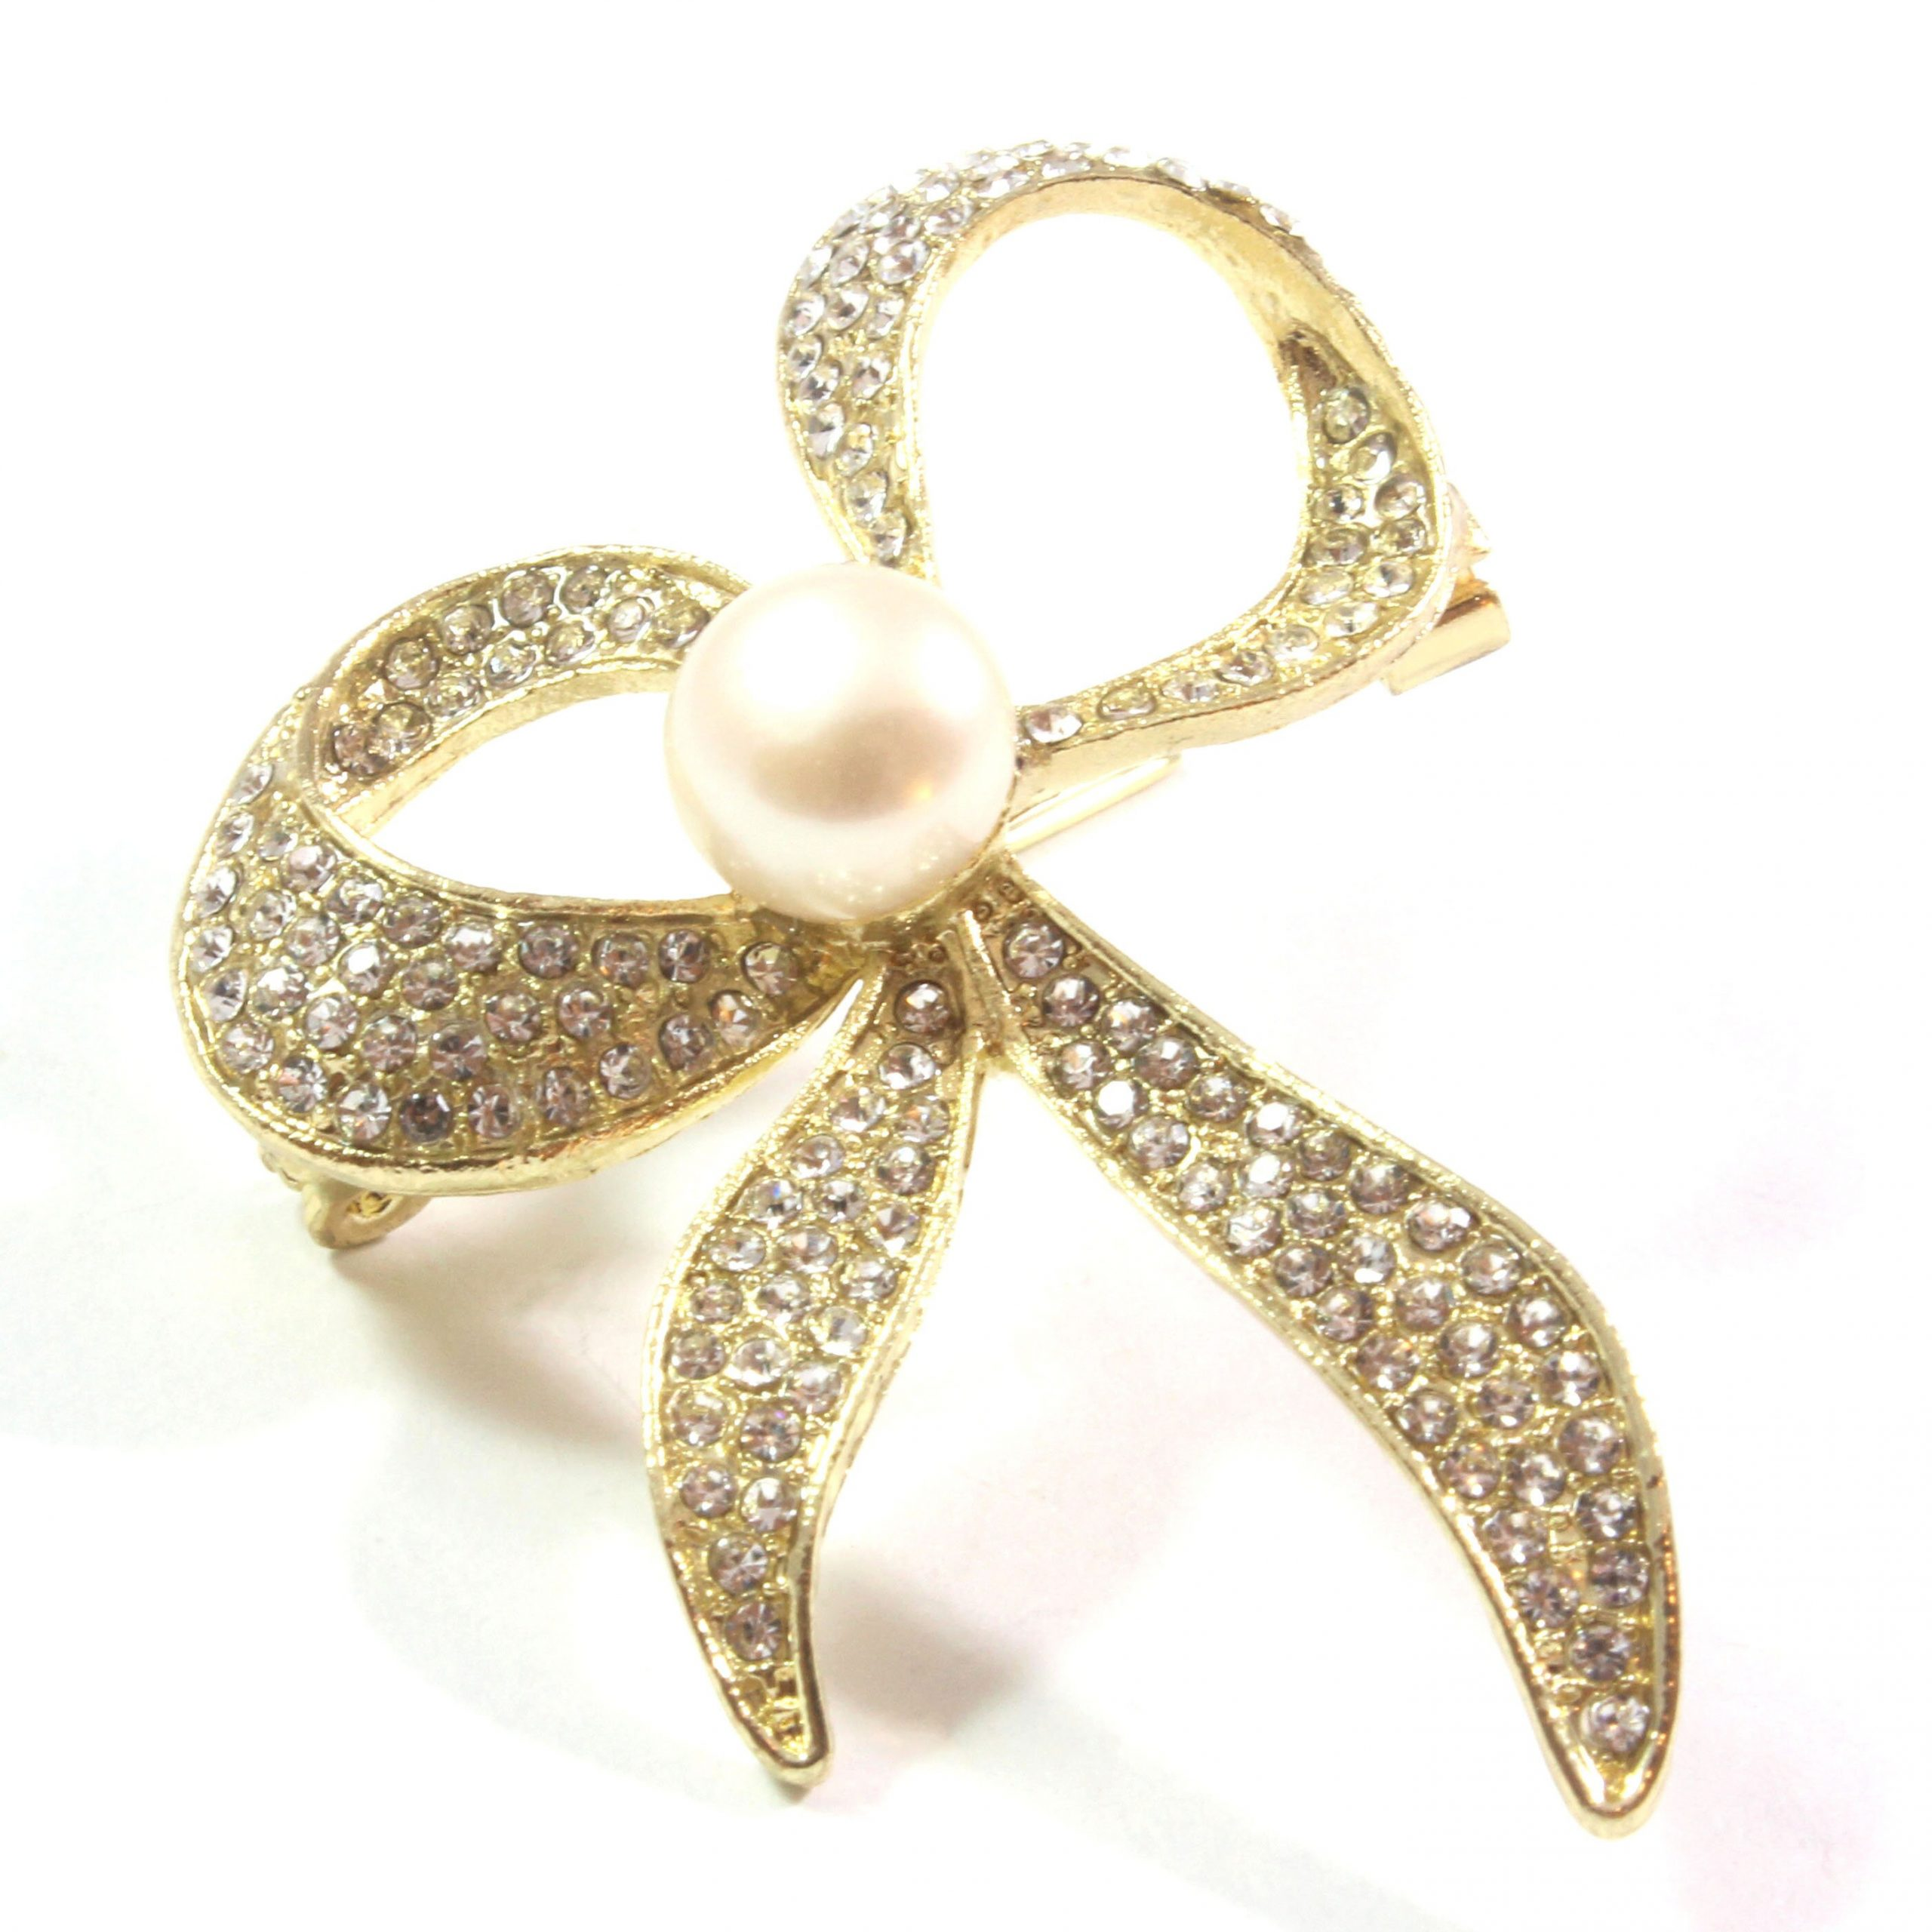 Gold Ribbon White Freshwater Cultured Pearl Brooch 9.5-10.0mm